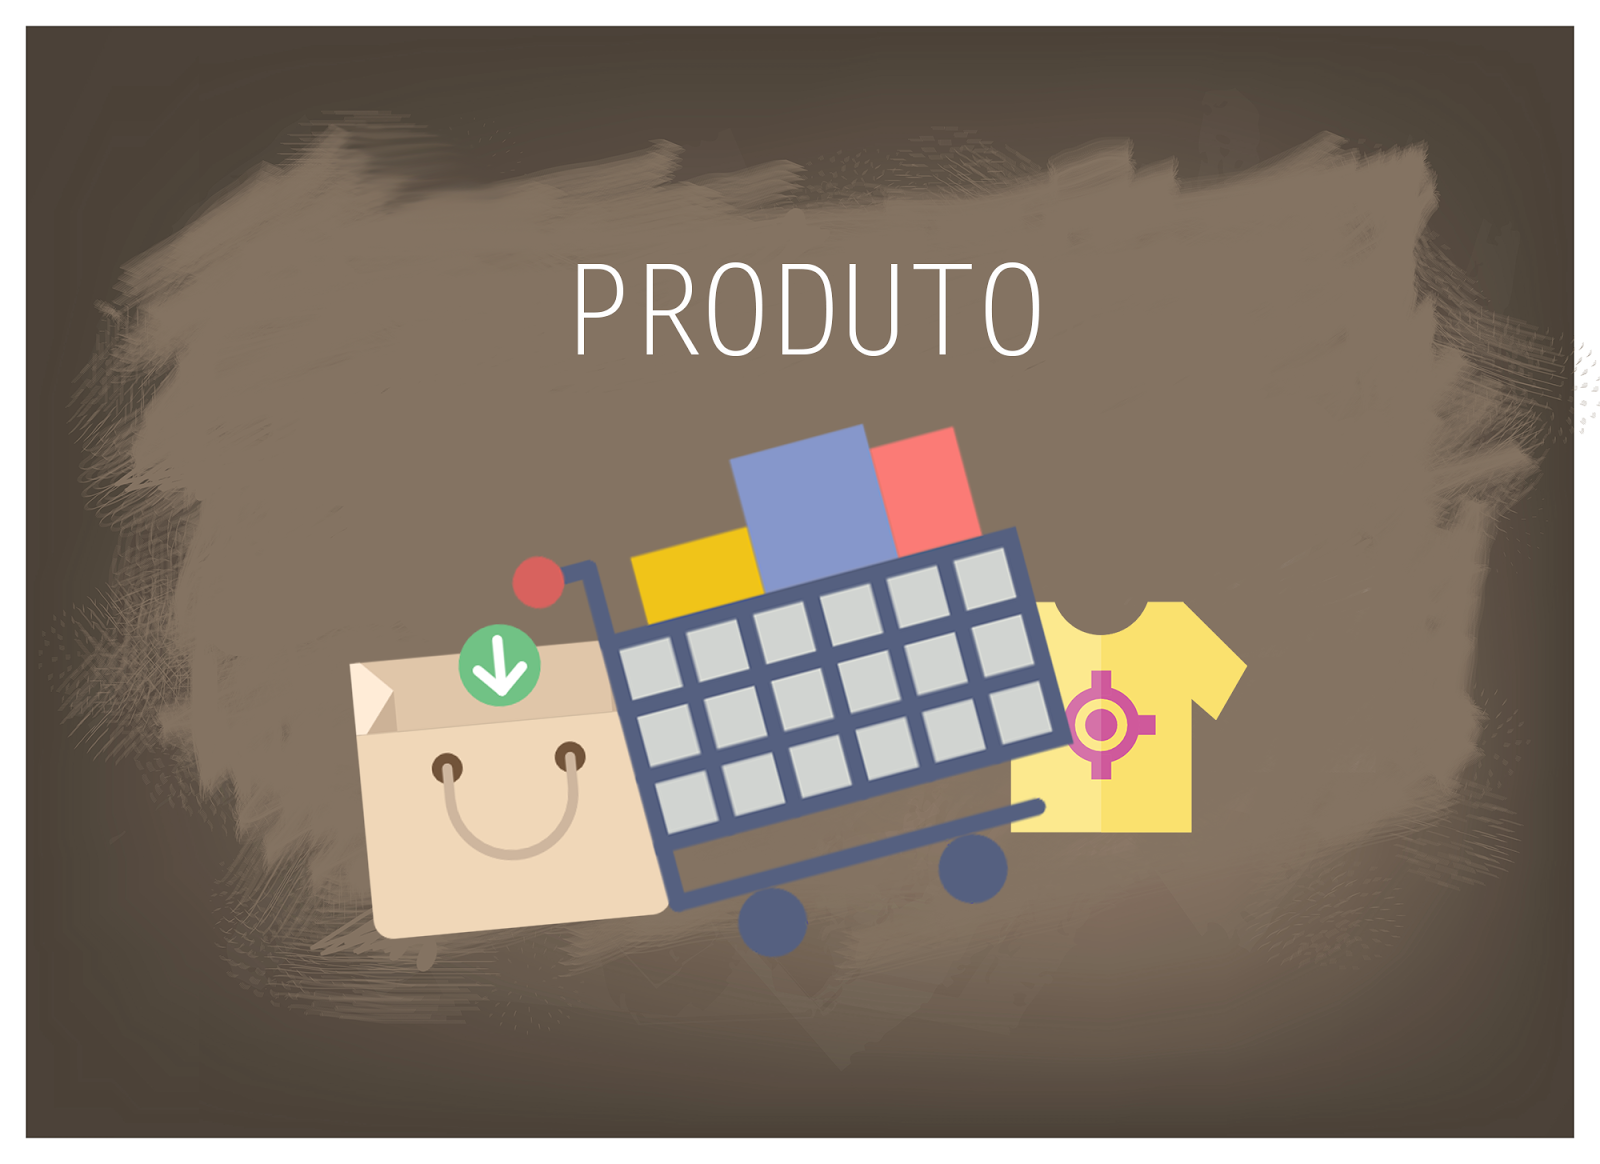 4ps do Marketing - Produto